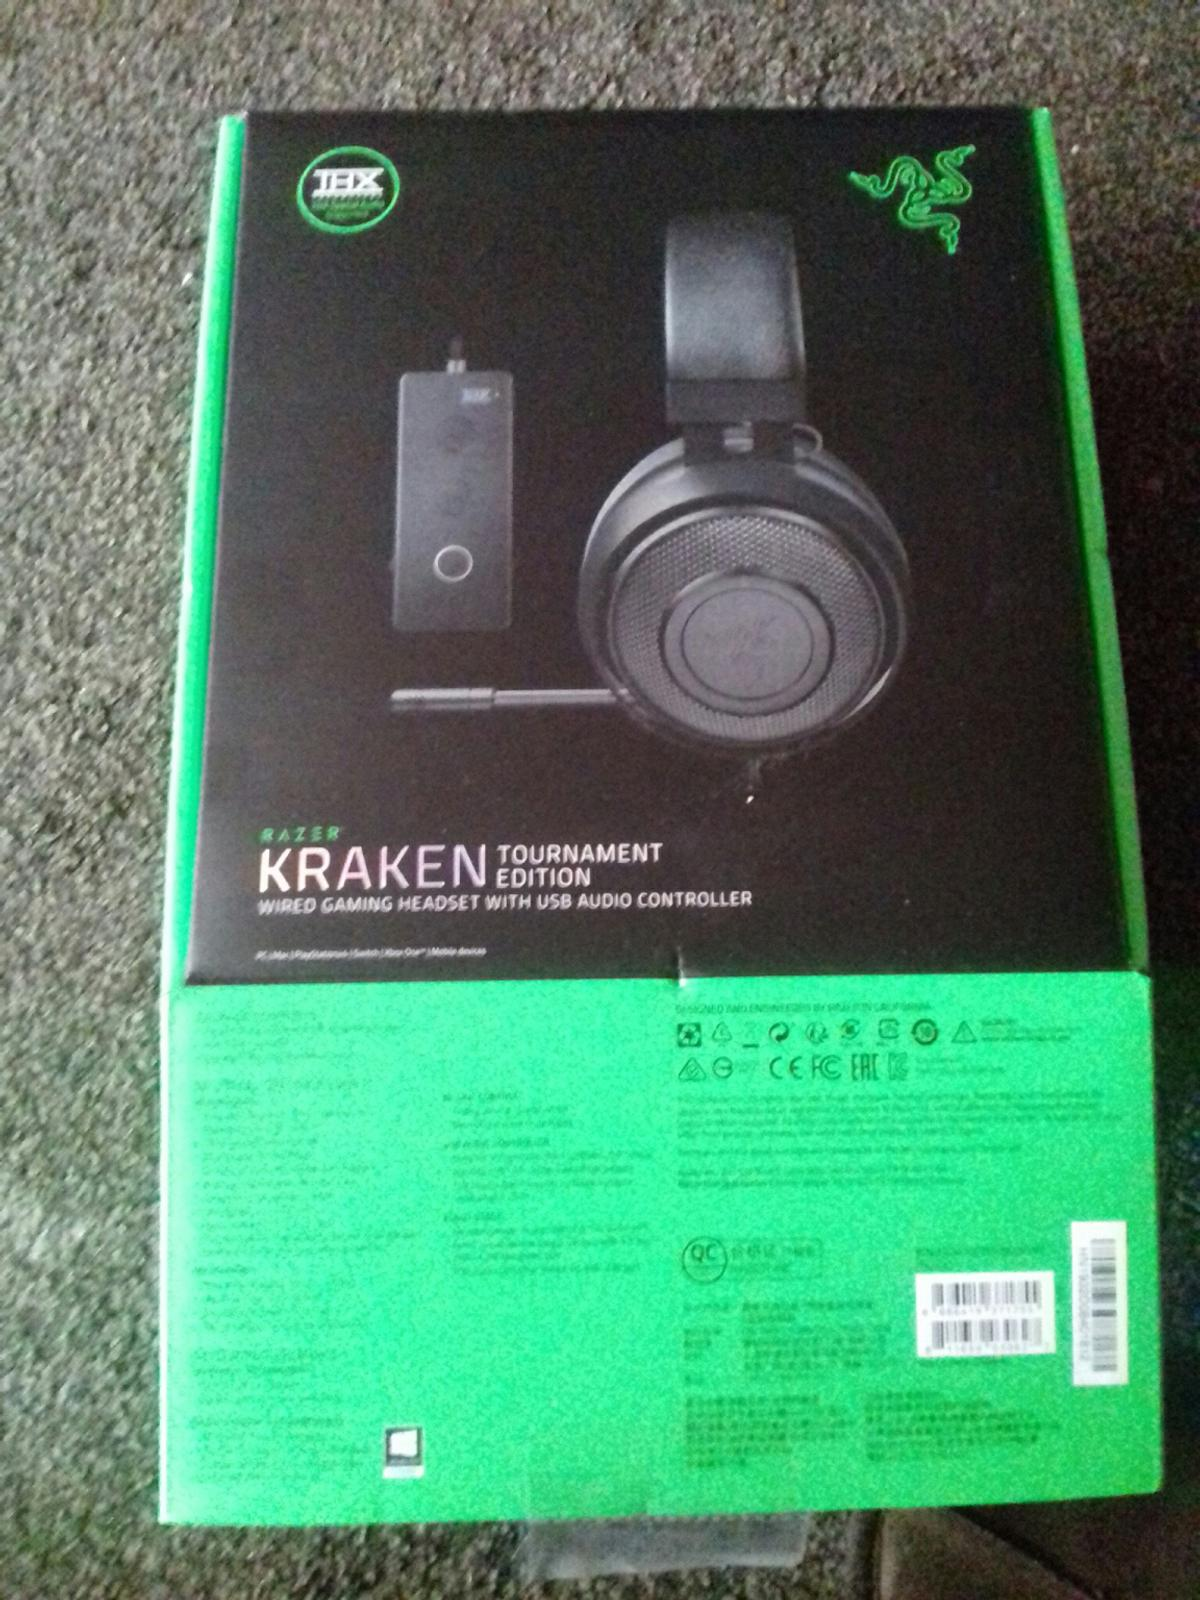 Razer Kraken Tournament Edition wired Gaming Headset with USB Audio Controller... THX spatial audio supported... unwanted gift... open but not used.. preferred collection but delivery can be arranged for small fee only to local area. USB compatibility with PC... X BOX 1... PLAYSTATION 4 and any device with 3.5 audio port